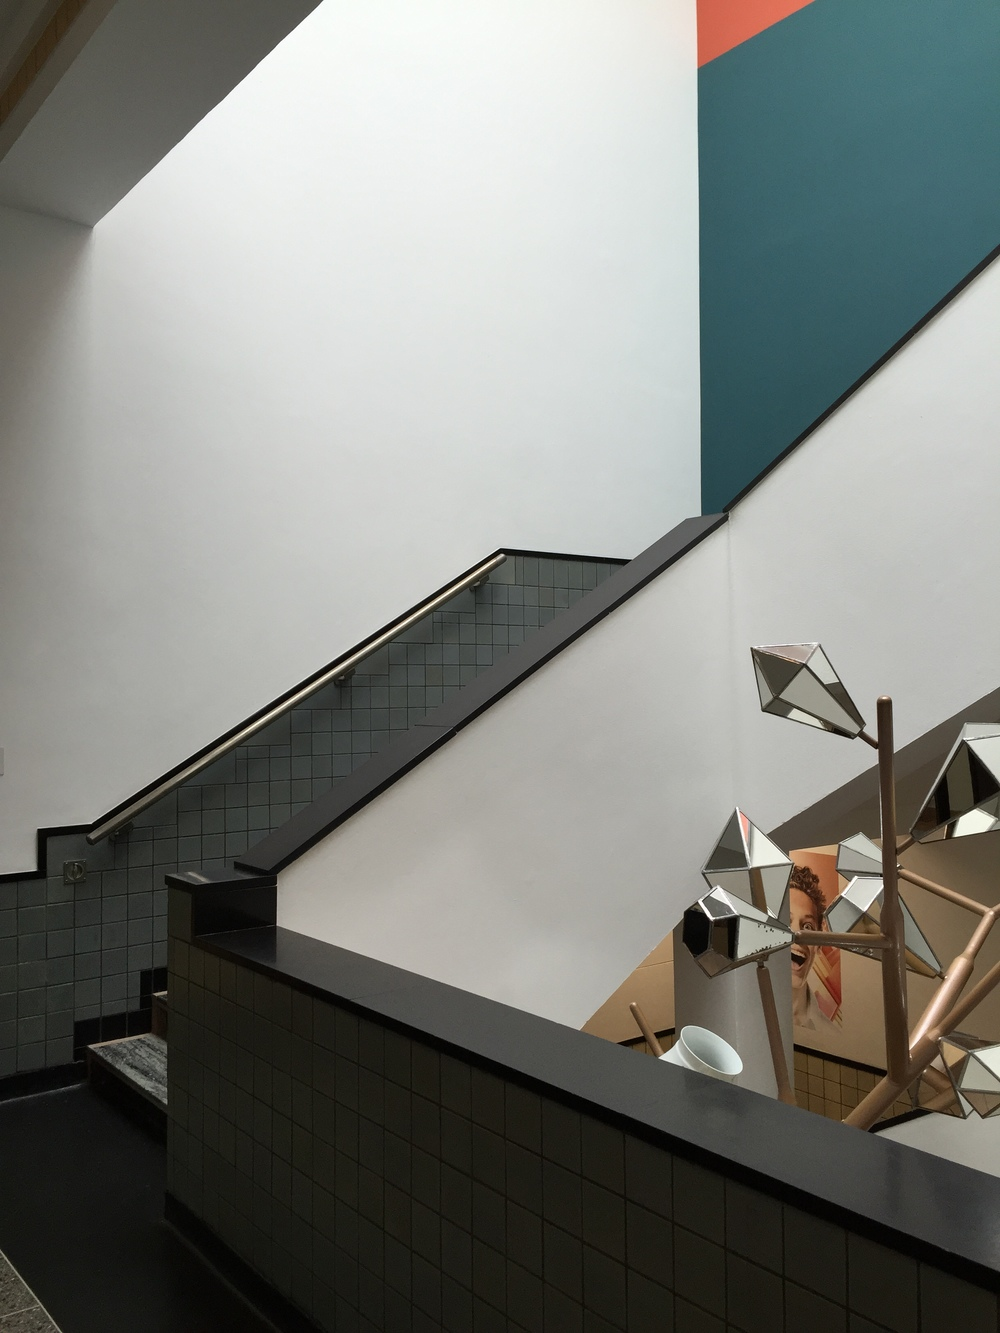 Berlage's clear lines, top lighting and contrasting colour scheme make his staircases into Mondrian-like works of art.